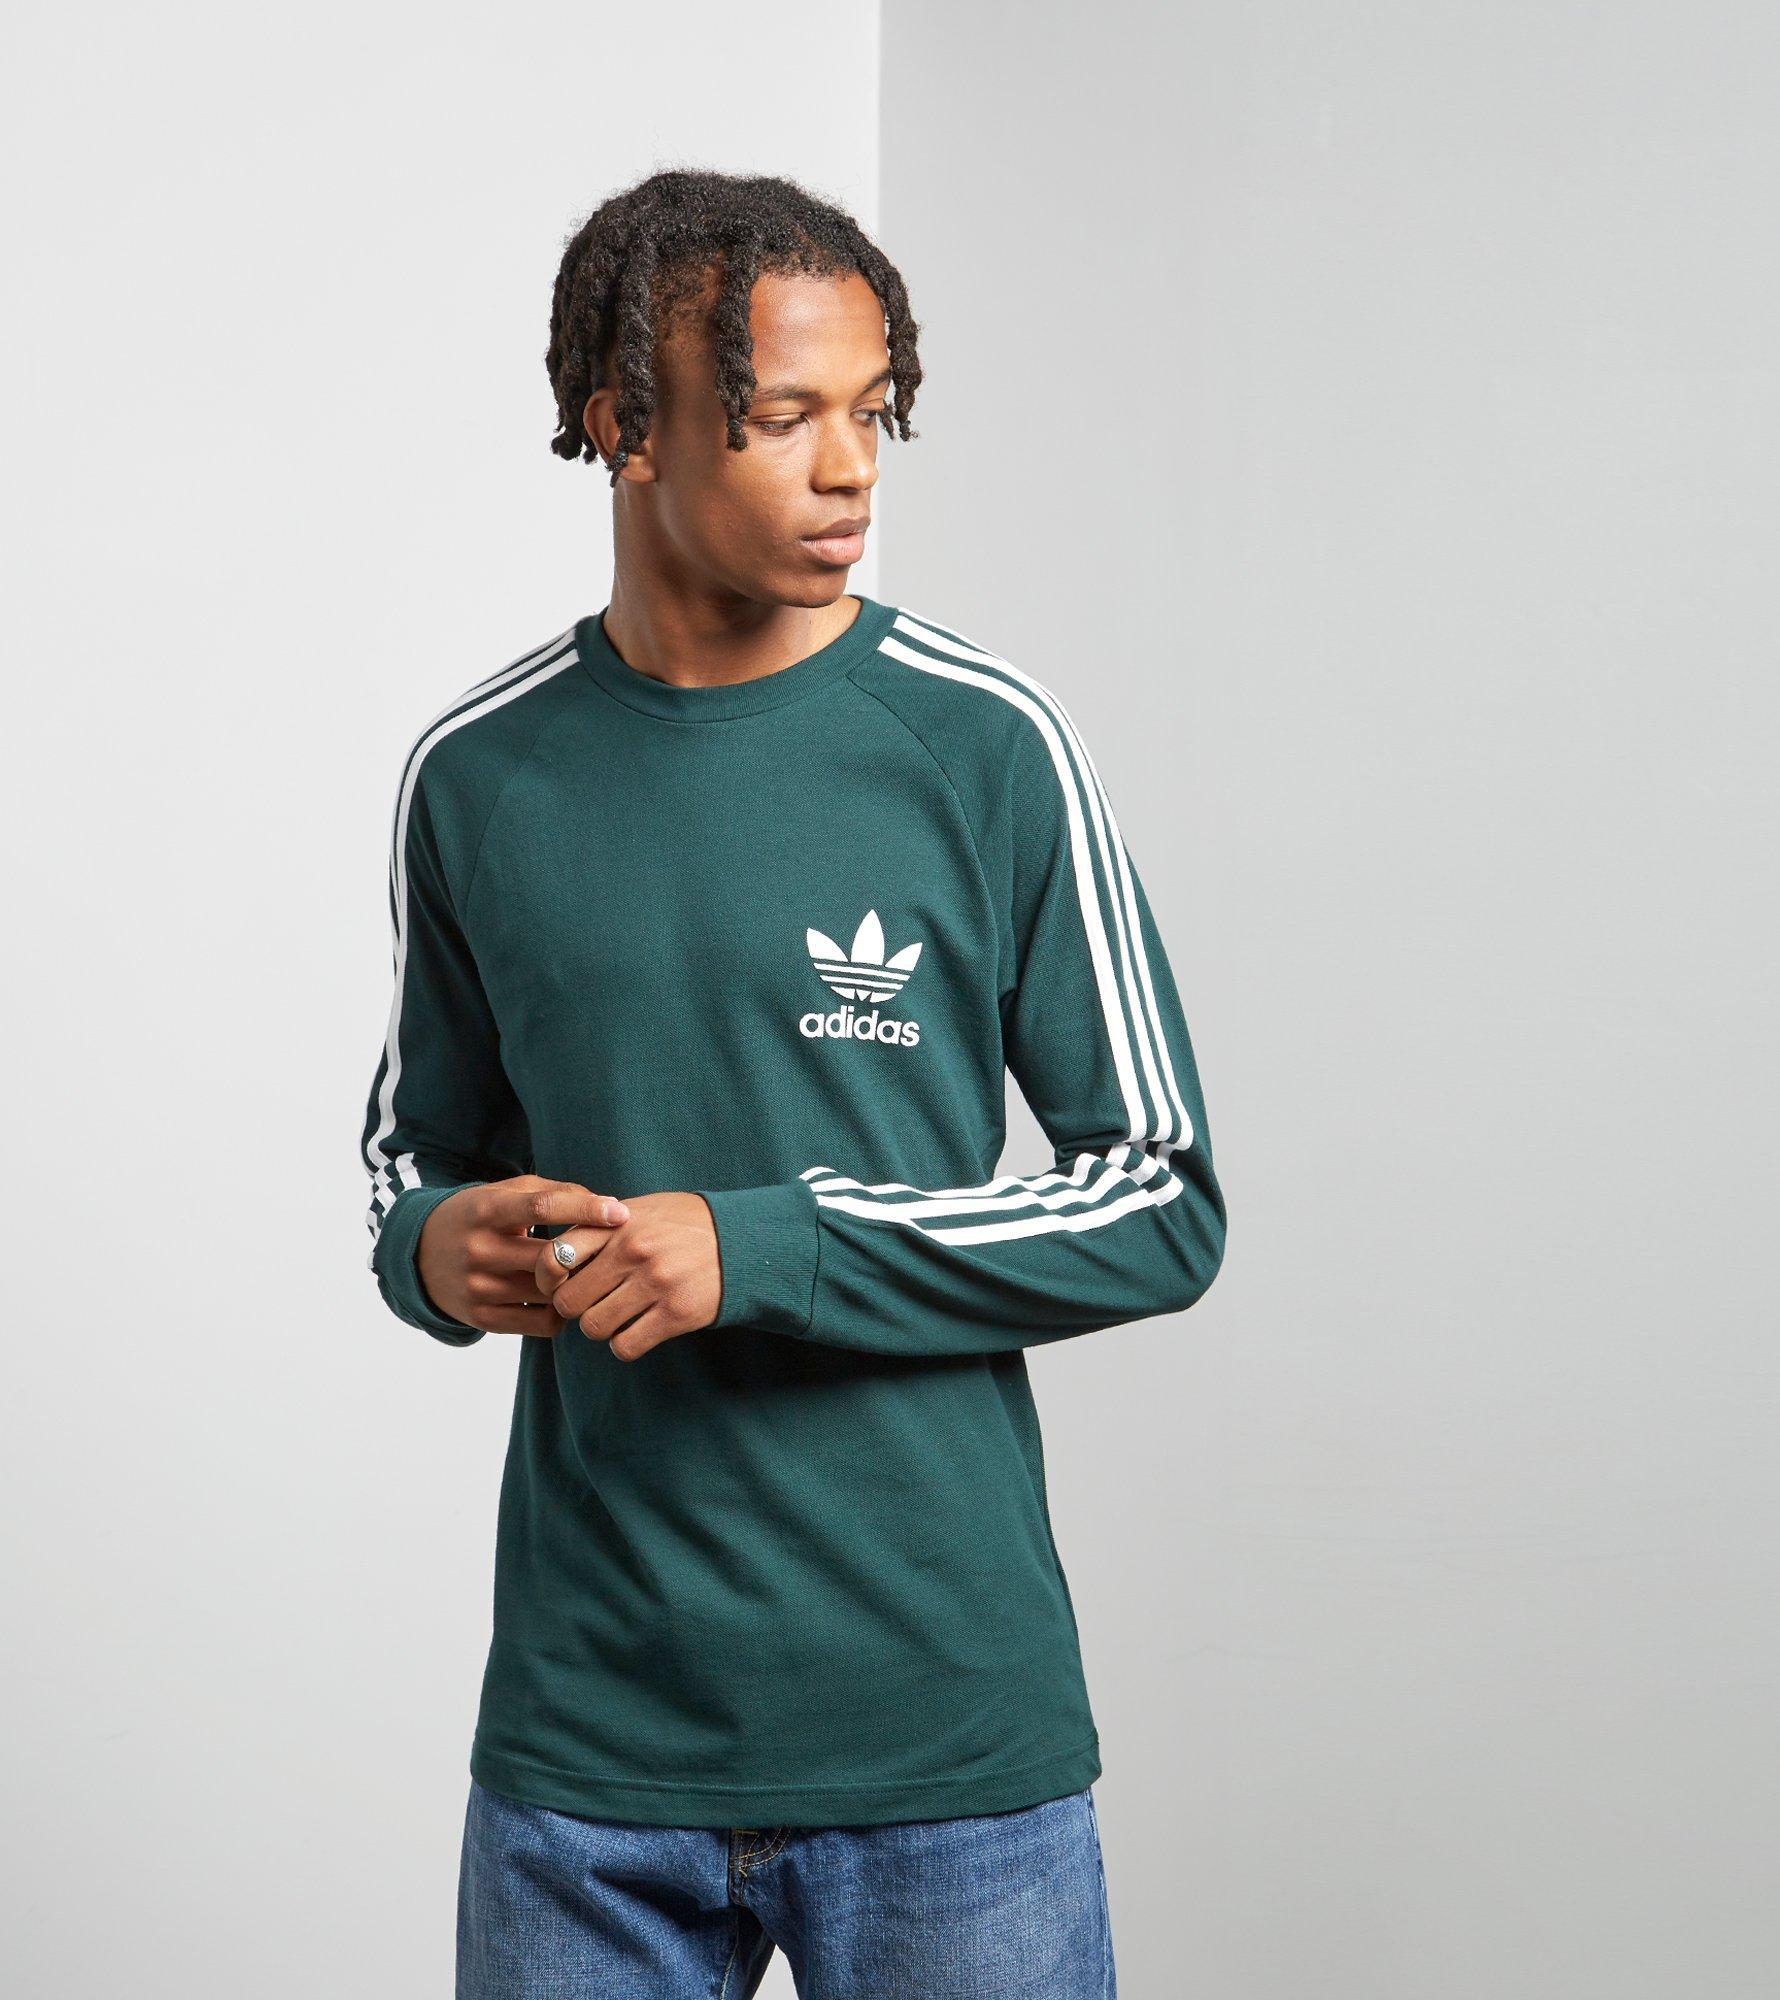 b0336152188f8 adidas Originals Long Sleeve California Pique T-shirt in Green for ...